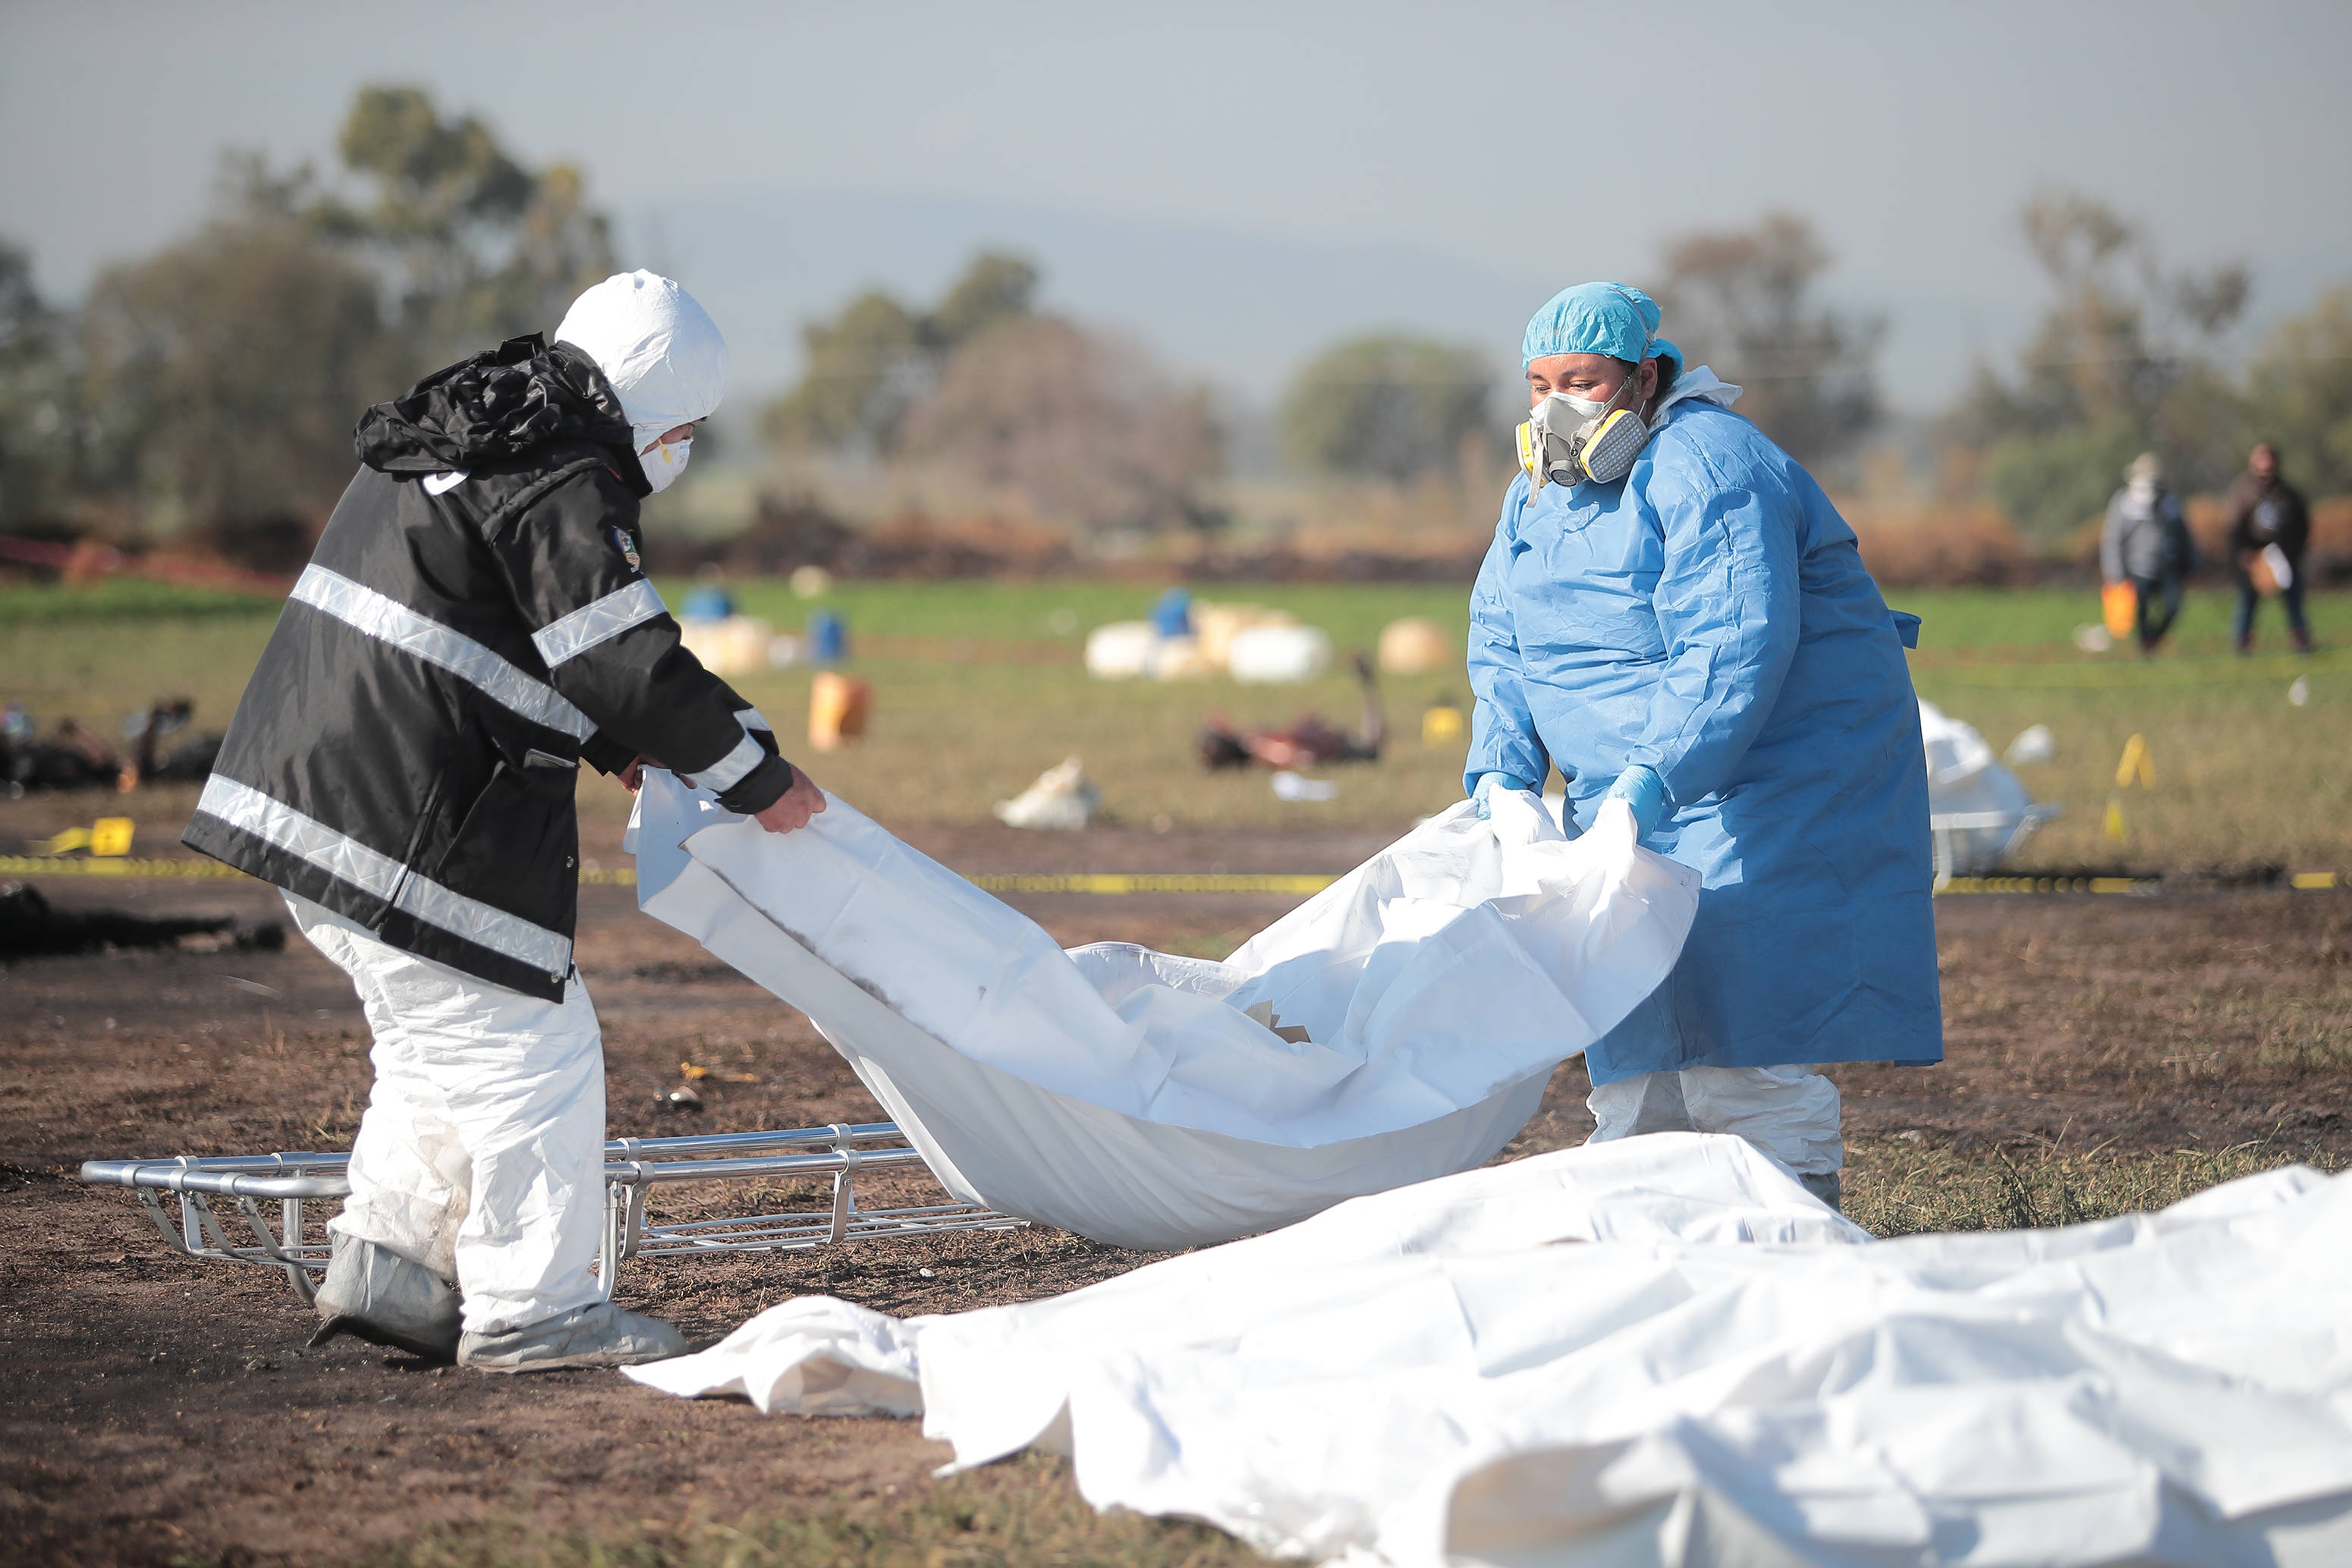 TLAHUELILPAN, MEXICO - JANUARY 19: (EDITOR'S NOTE: Image depicts graphic content) Forensic doctors work with burned bodies after an explosion in a pipeline belonging to Mexican oil company PEMEX on January 19, 2019 in Tlahuelilpan, Mexico. In a statement, PEMEX announced that the explosion was caused by the illegal manipulation of the pipeline, as minutes before the accident videos were shot where people could be seen filling drums and car fuel tanks. (Photo by Hector Vivas/Getty Images)